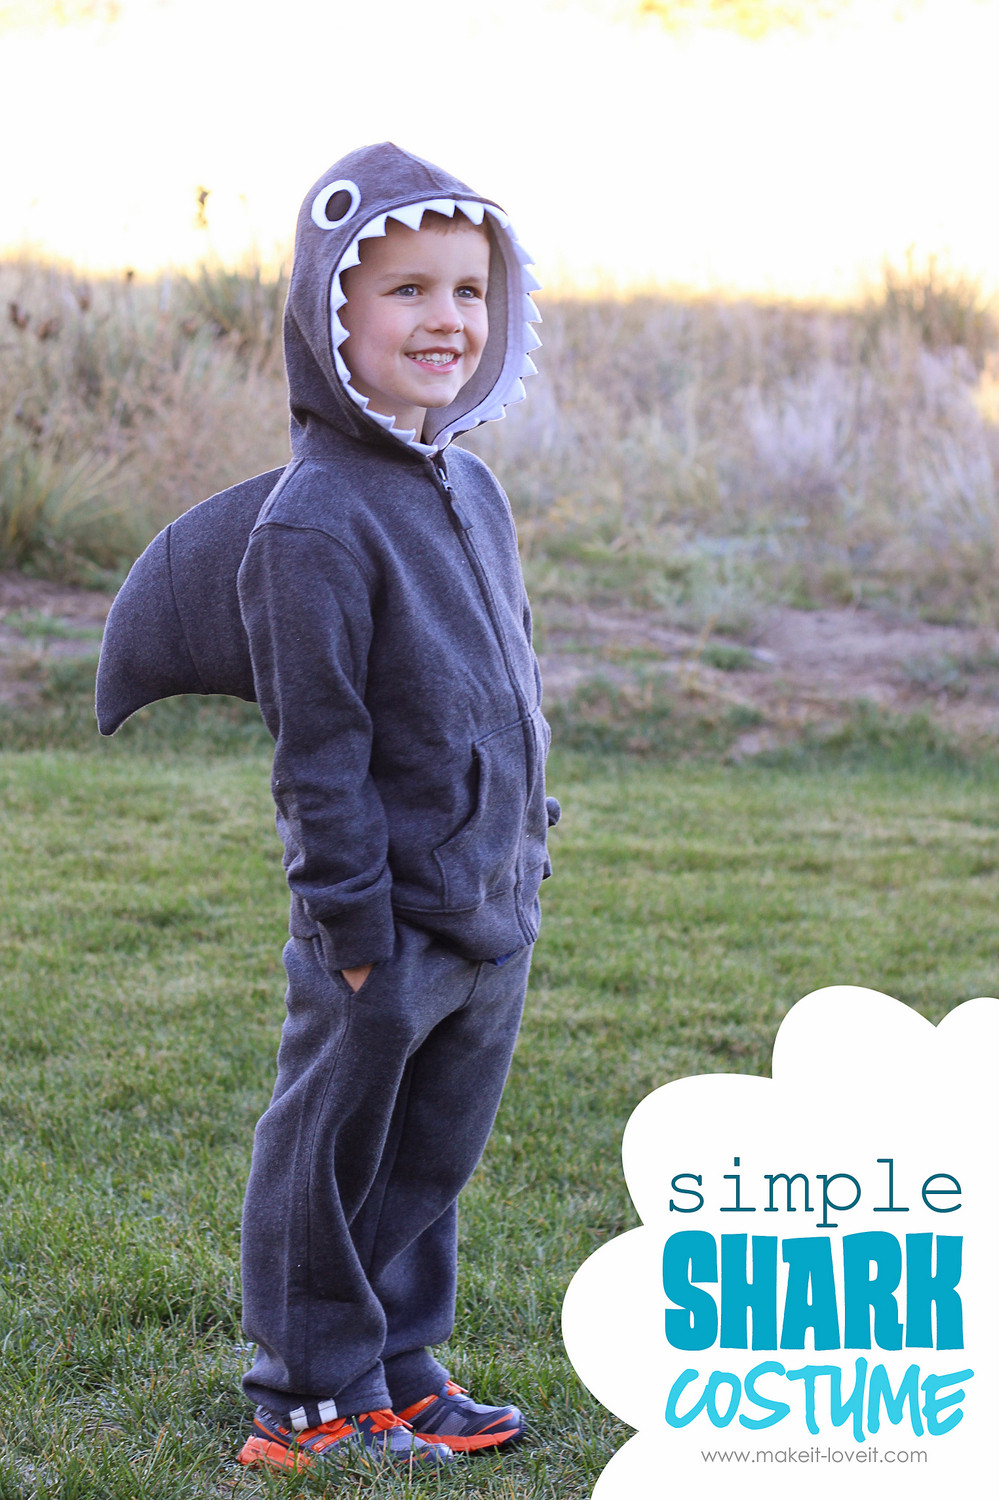 Best ideas about Simple DIY Halloween Costumes . Save or Pin 36 SIMPLE COSTUME IDEAS for Kids and Adults Now.